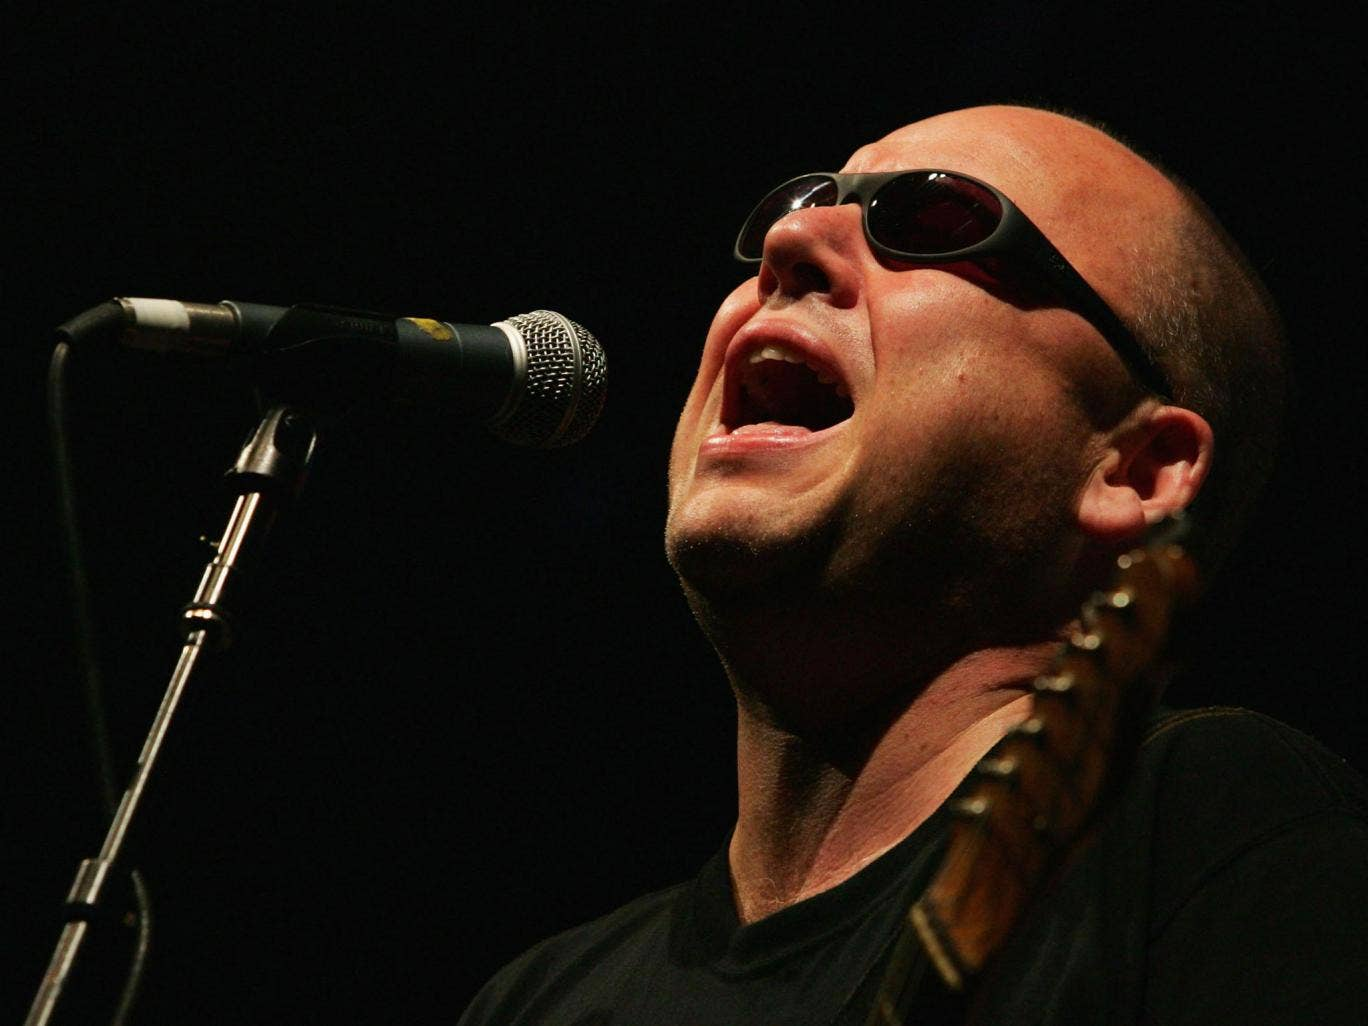 Black Francis, frontman of Pixies, who are releasing their first studio album in twenty-three years.